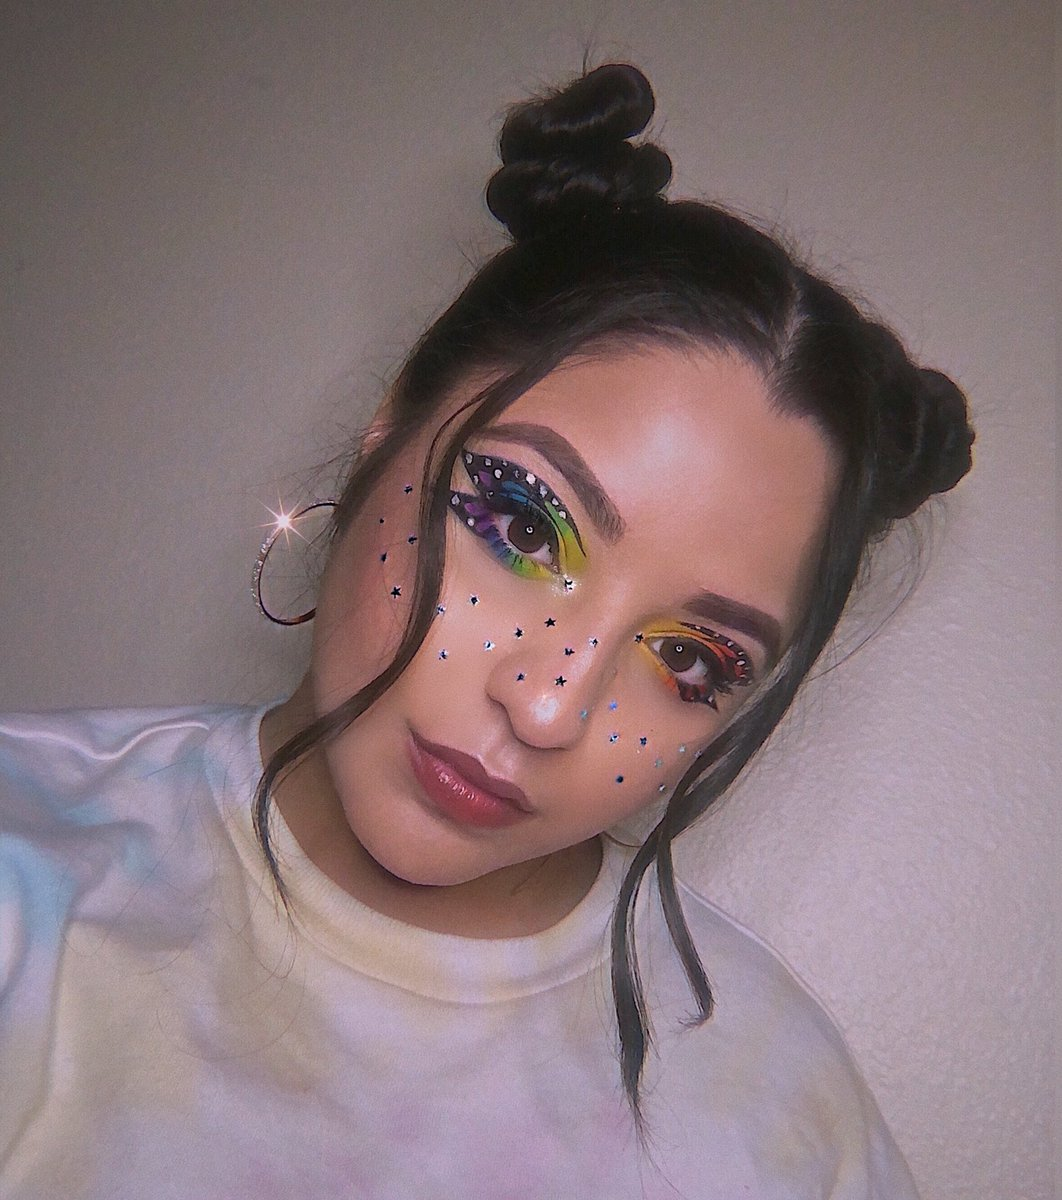 Last two pictures from last week's makeup look  For my eyes I used the @MorpheBrushes @jamescharles #unleashyourinnerartist Palette, and for the star freckles I used the #morphebrushes 24A Artist Pass Artistry Palette #PrideMonth #pridemakeup #butterflymakeup pic.twitter.com/VjwFQwsiot